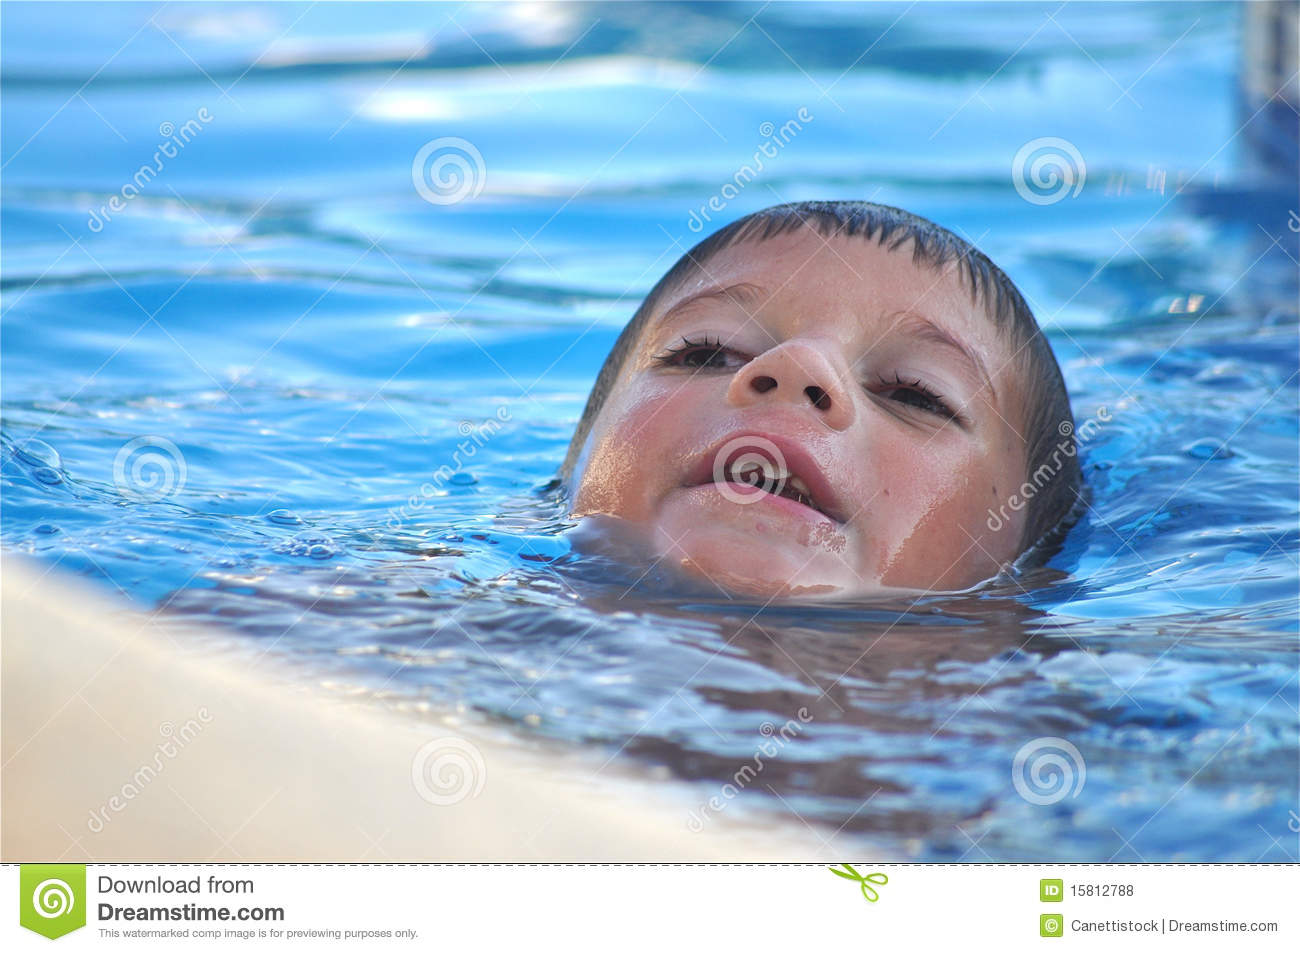 Alone In The Swimming Pool Royalty Free Stock Photos Image 15812788